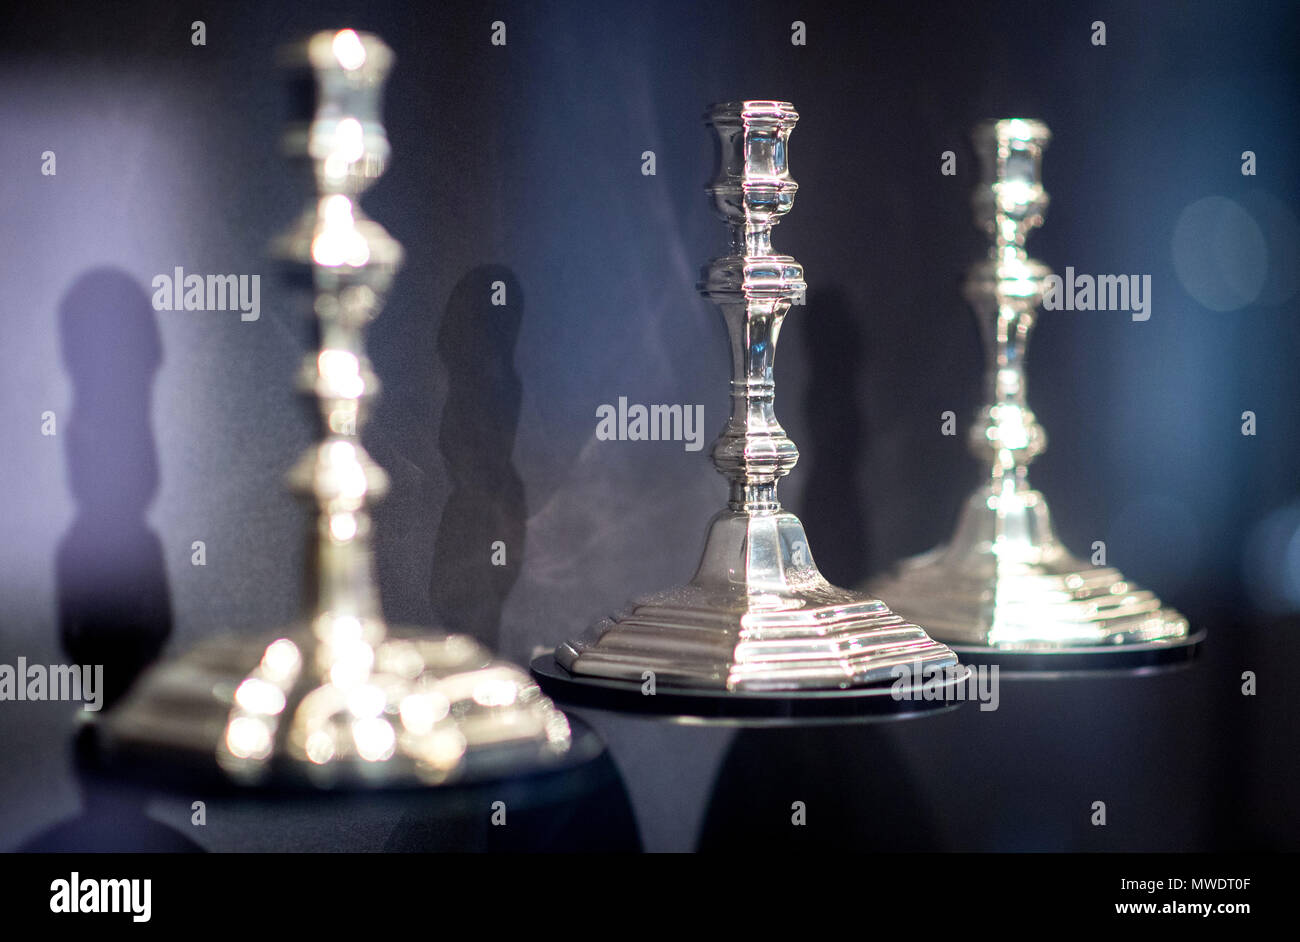 31 May 2018, Germany, Celle: Candle holders made of silver are on display at the Residenzmuseum. After a month-long redecoration, the gold and silverware collection that was formerly used by royalty and the upper classes is on display again. Photo: Hauke-Christian Dittrich/dpa - Stock Image